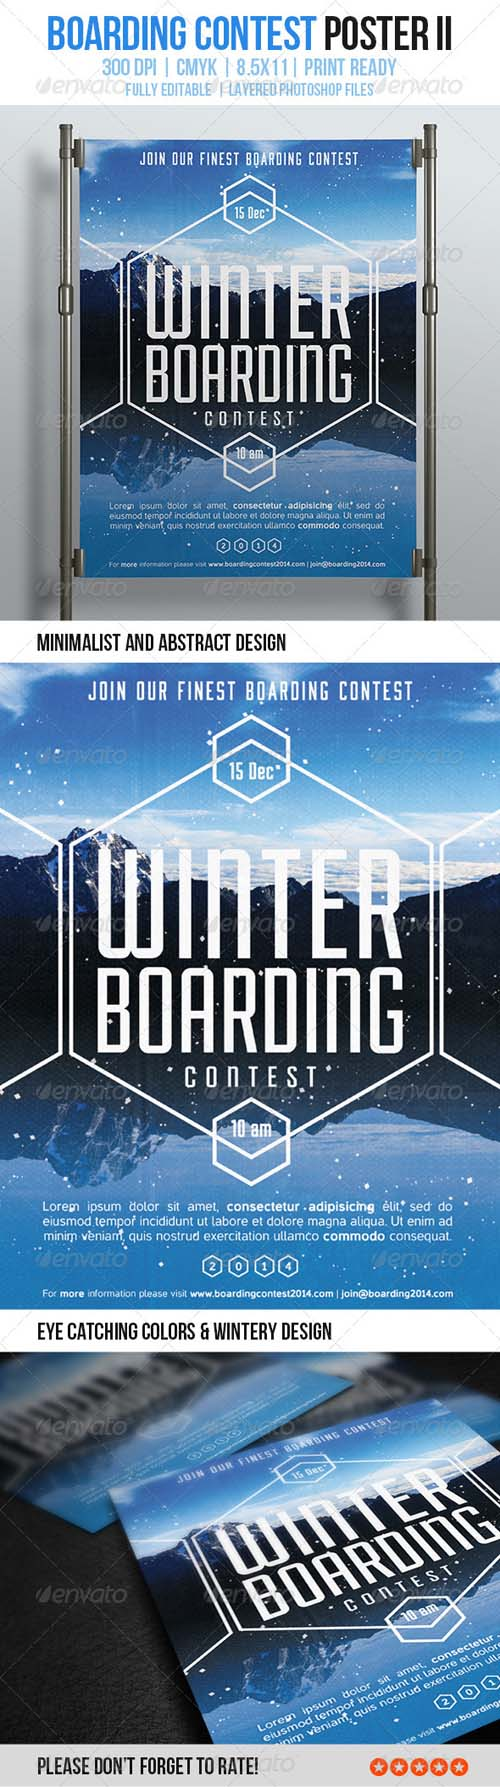 Boarding Contest Poster II